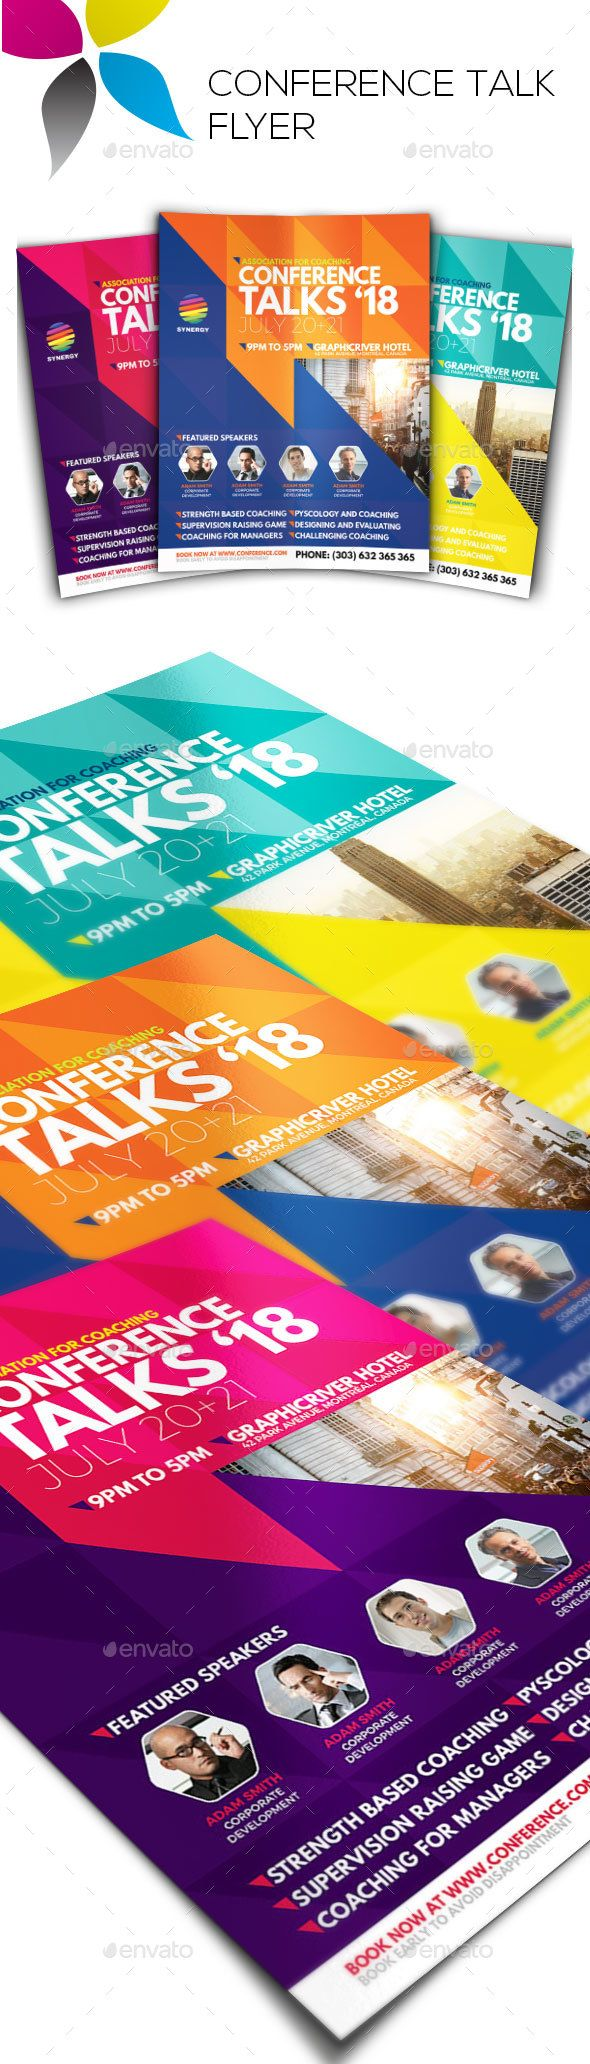 The 25 best Flyer design templates ideas – Conference Flyer Template